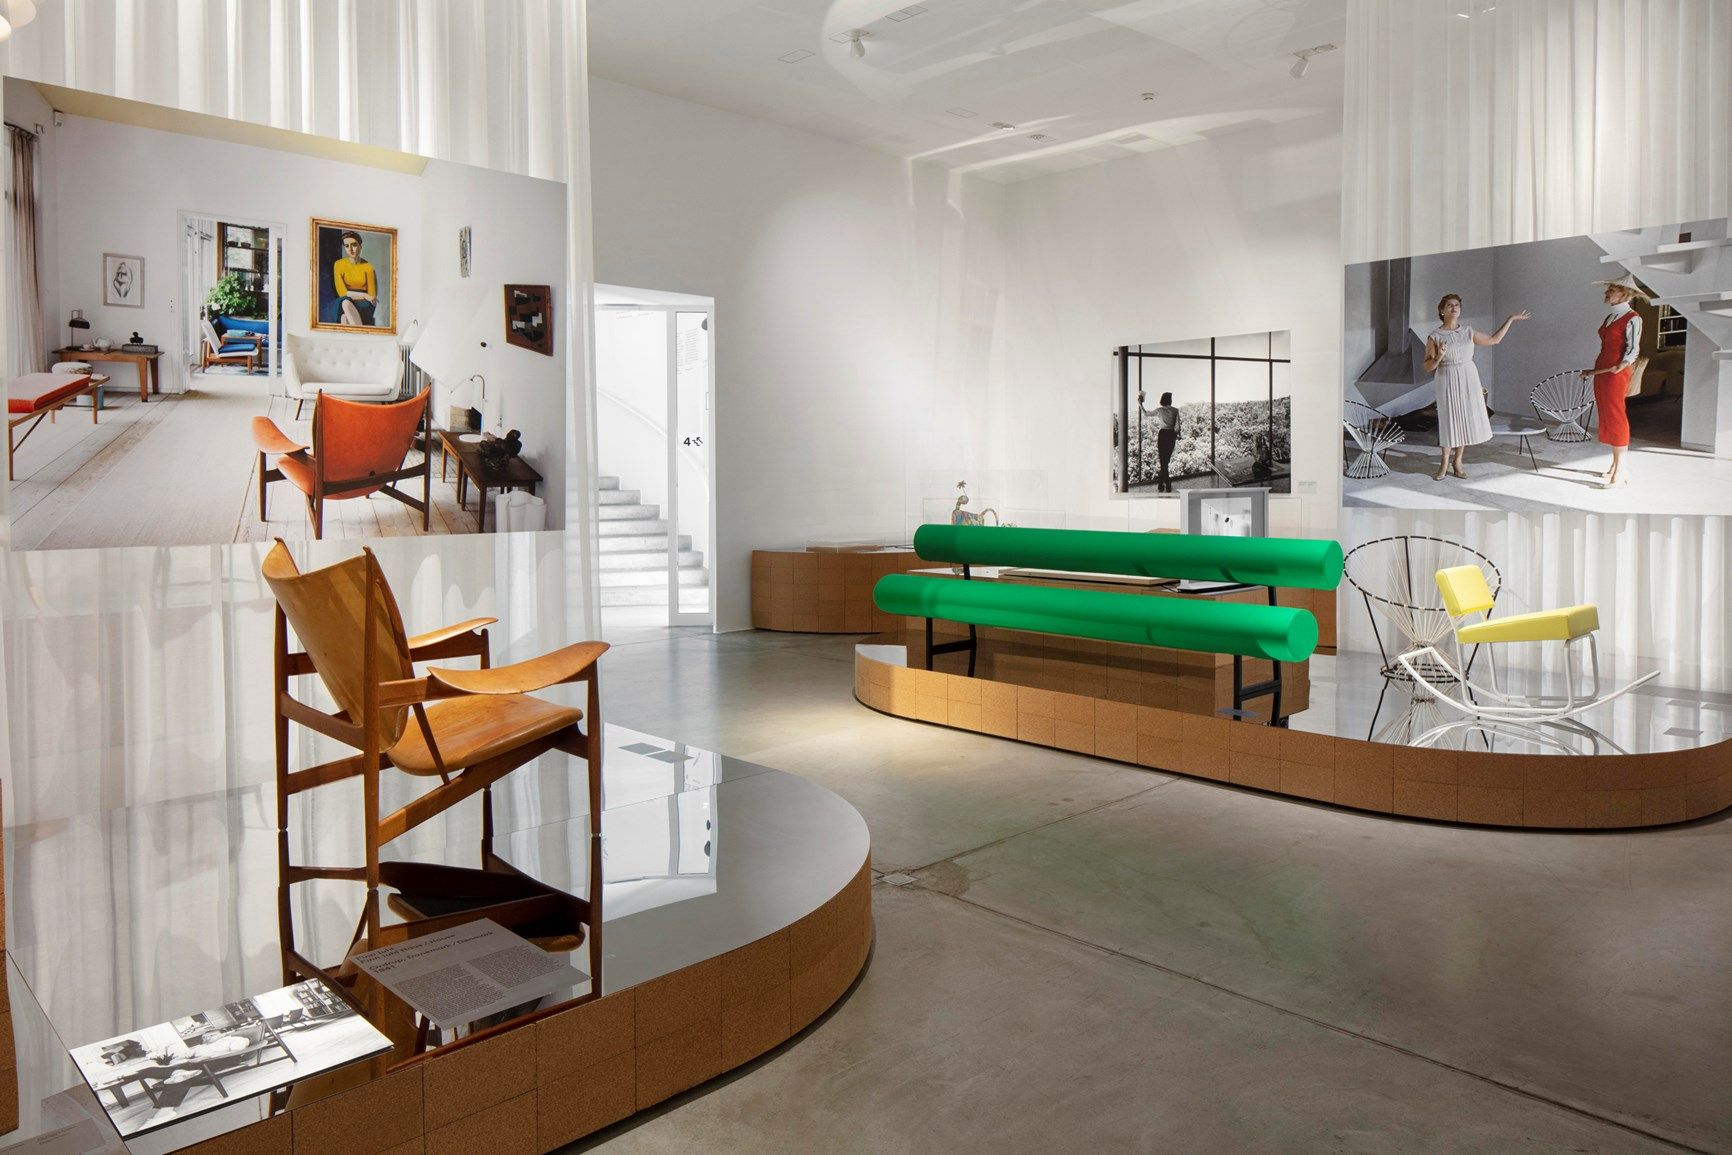 Installation view »Home Stories: 100 Years, 20 visionary Interiorss« © Vitra Design Museum, photo: Ludger Paffrath